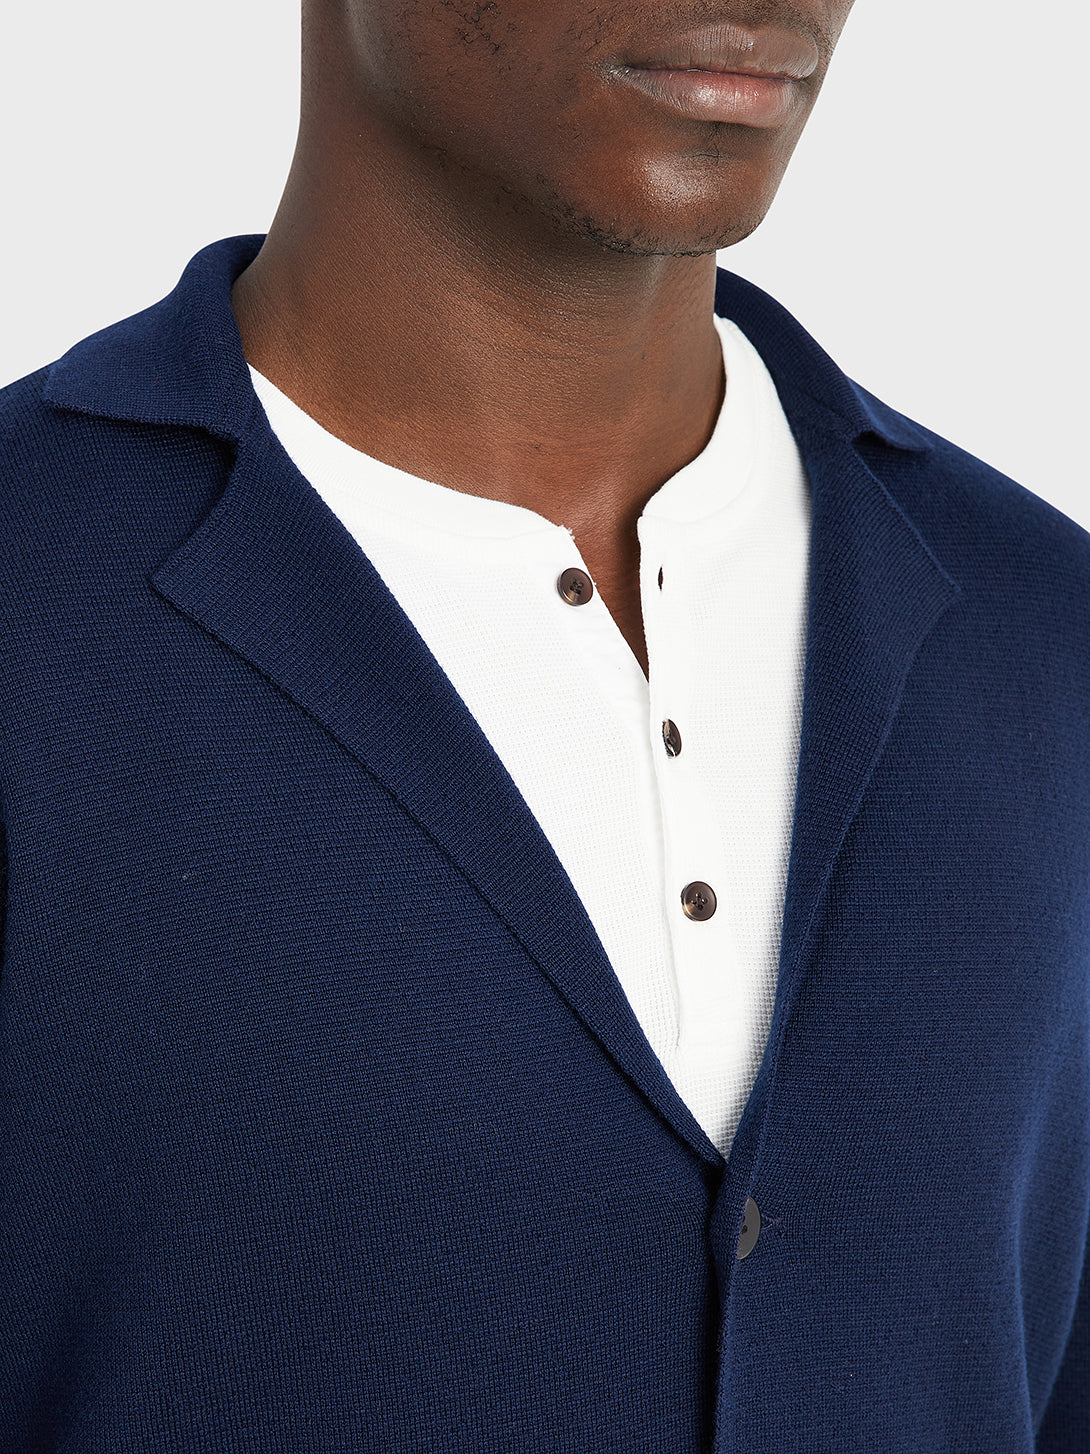 ONS Clothing Men's Cool wool cardigan in NAVY